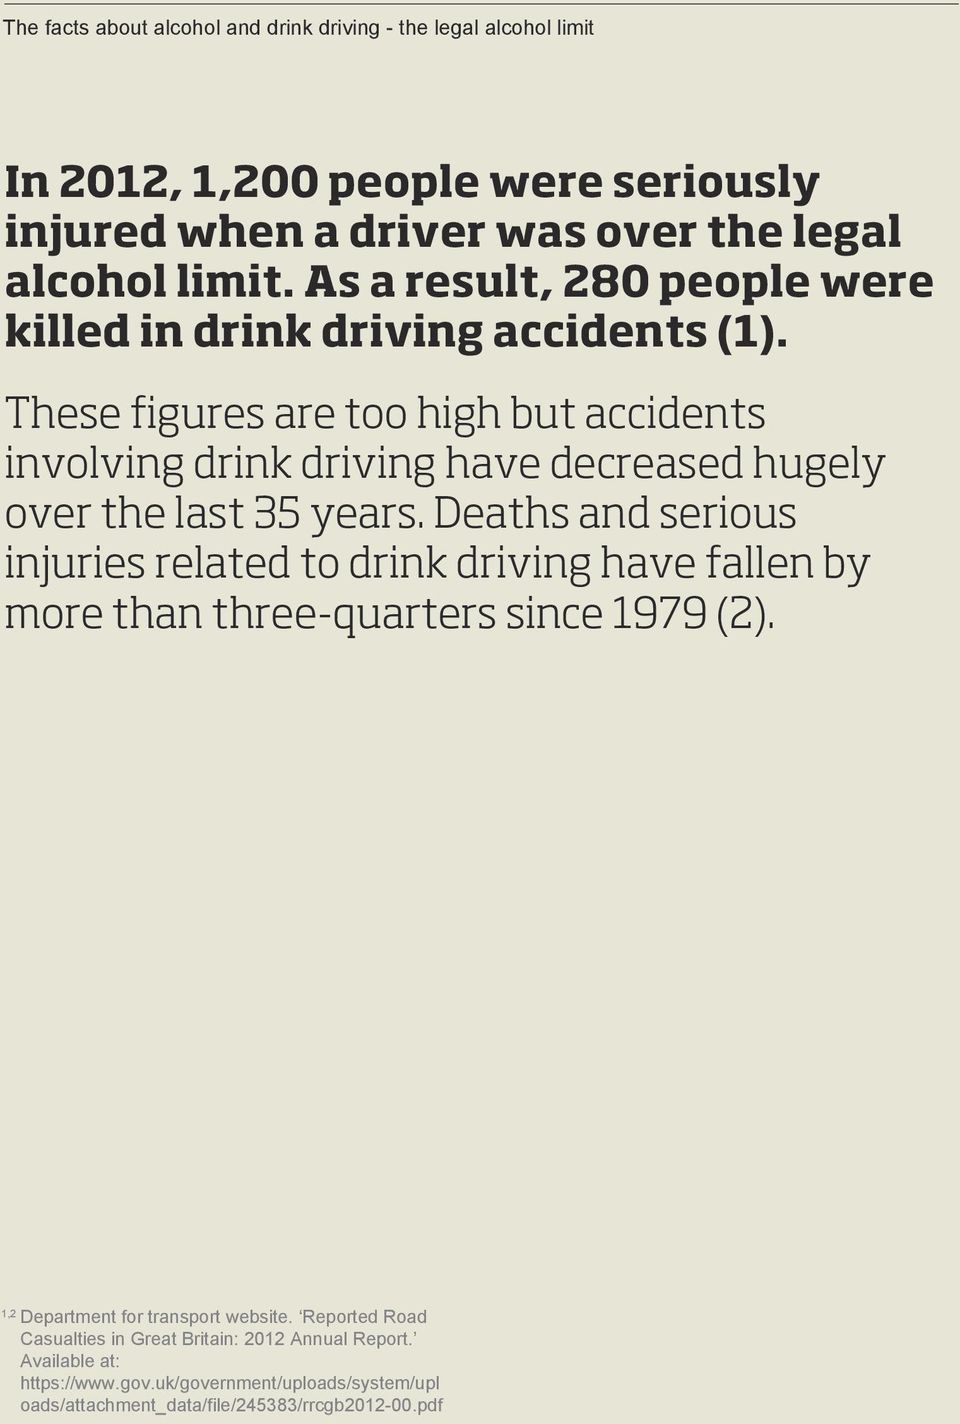 These figures are too high but accidents involving drink driving have decreased hugely over the last 35 years.